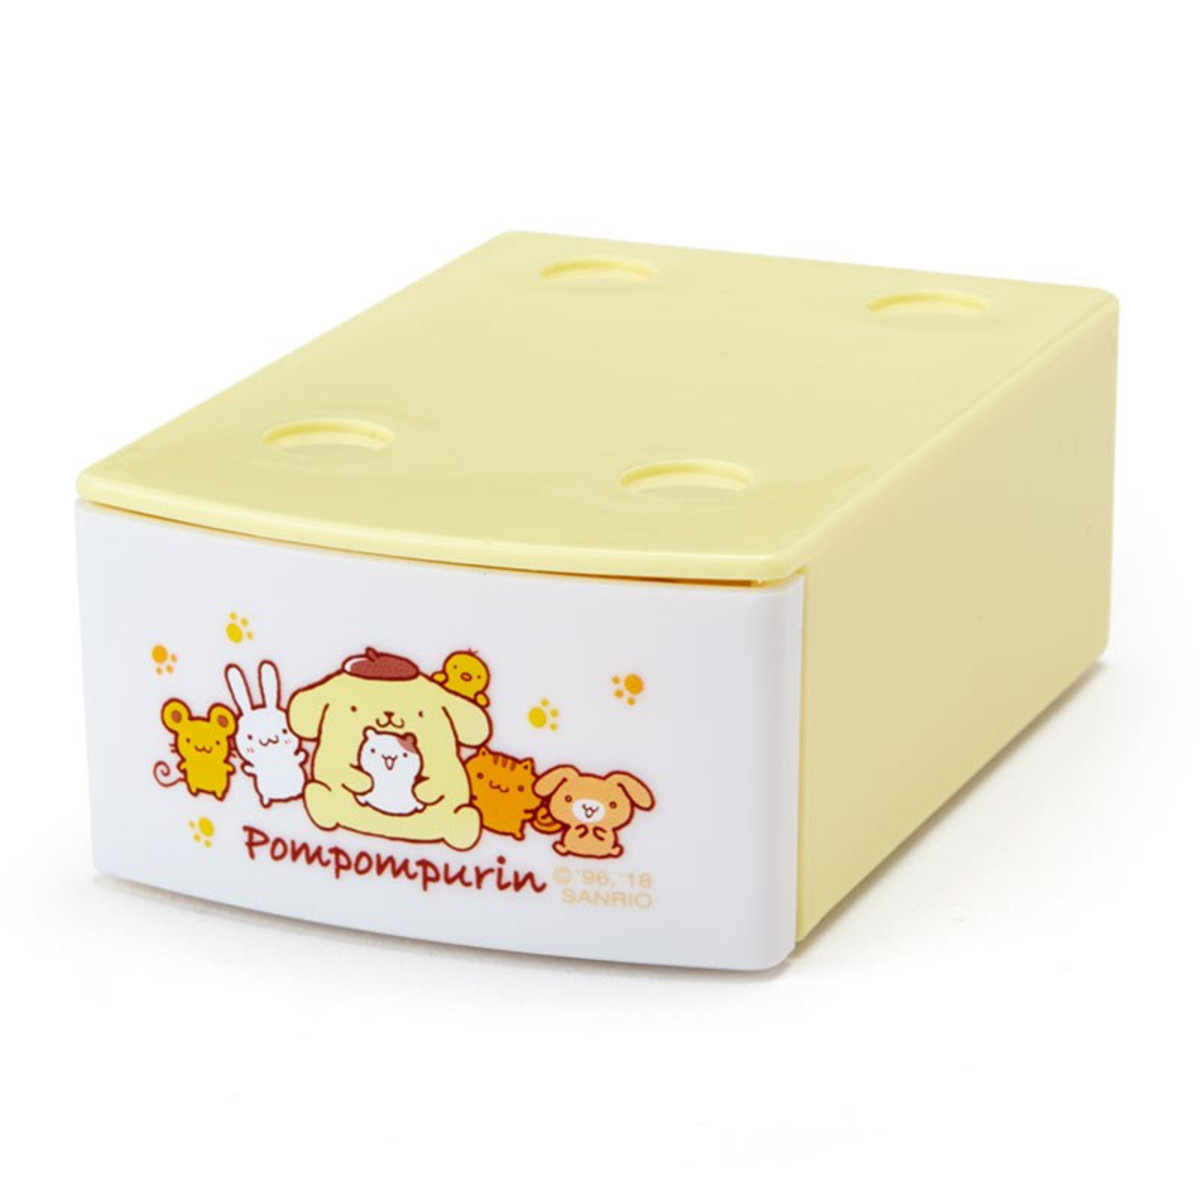 Pompompurin Mini Stacking Case with Memo (20 sheets)